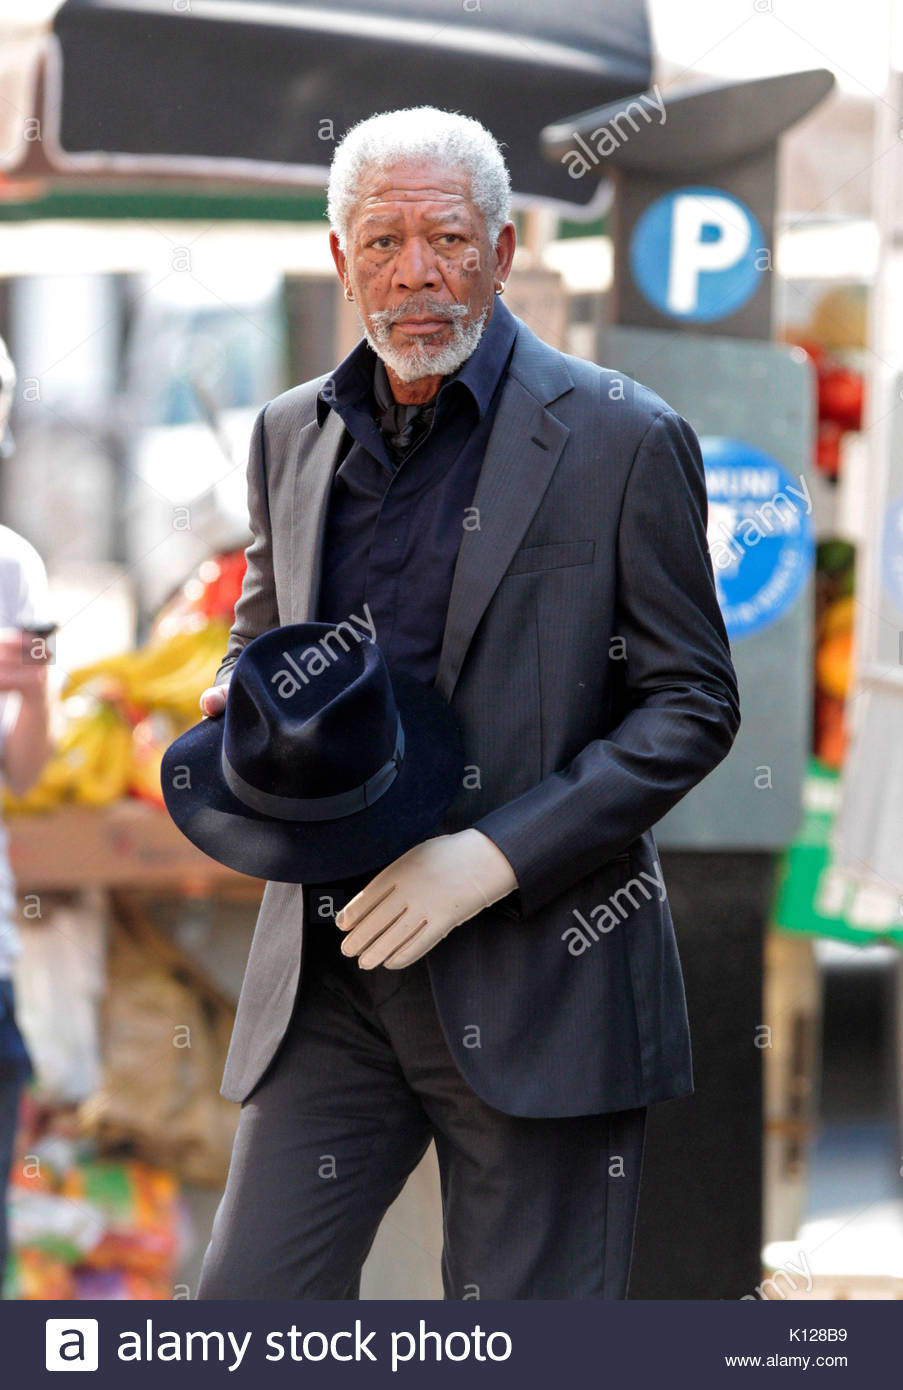 morgan freeman morgan freeman seen wearing white glove on his left hand while on location filming now you see me in lower manhattan